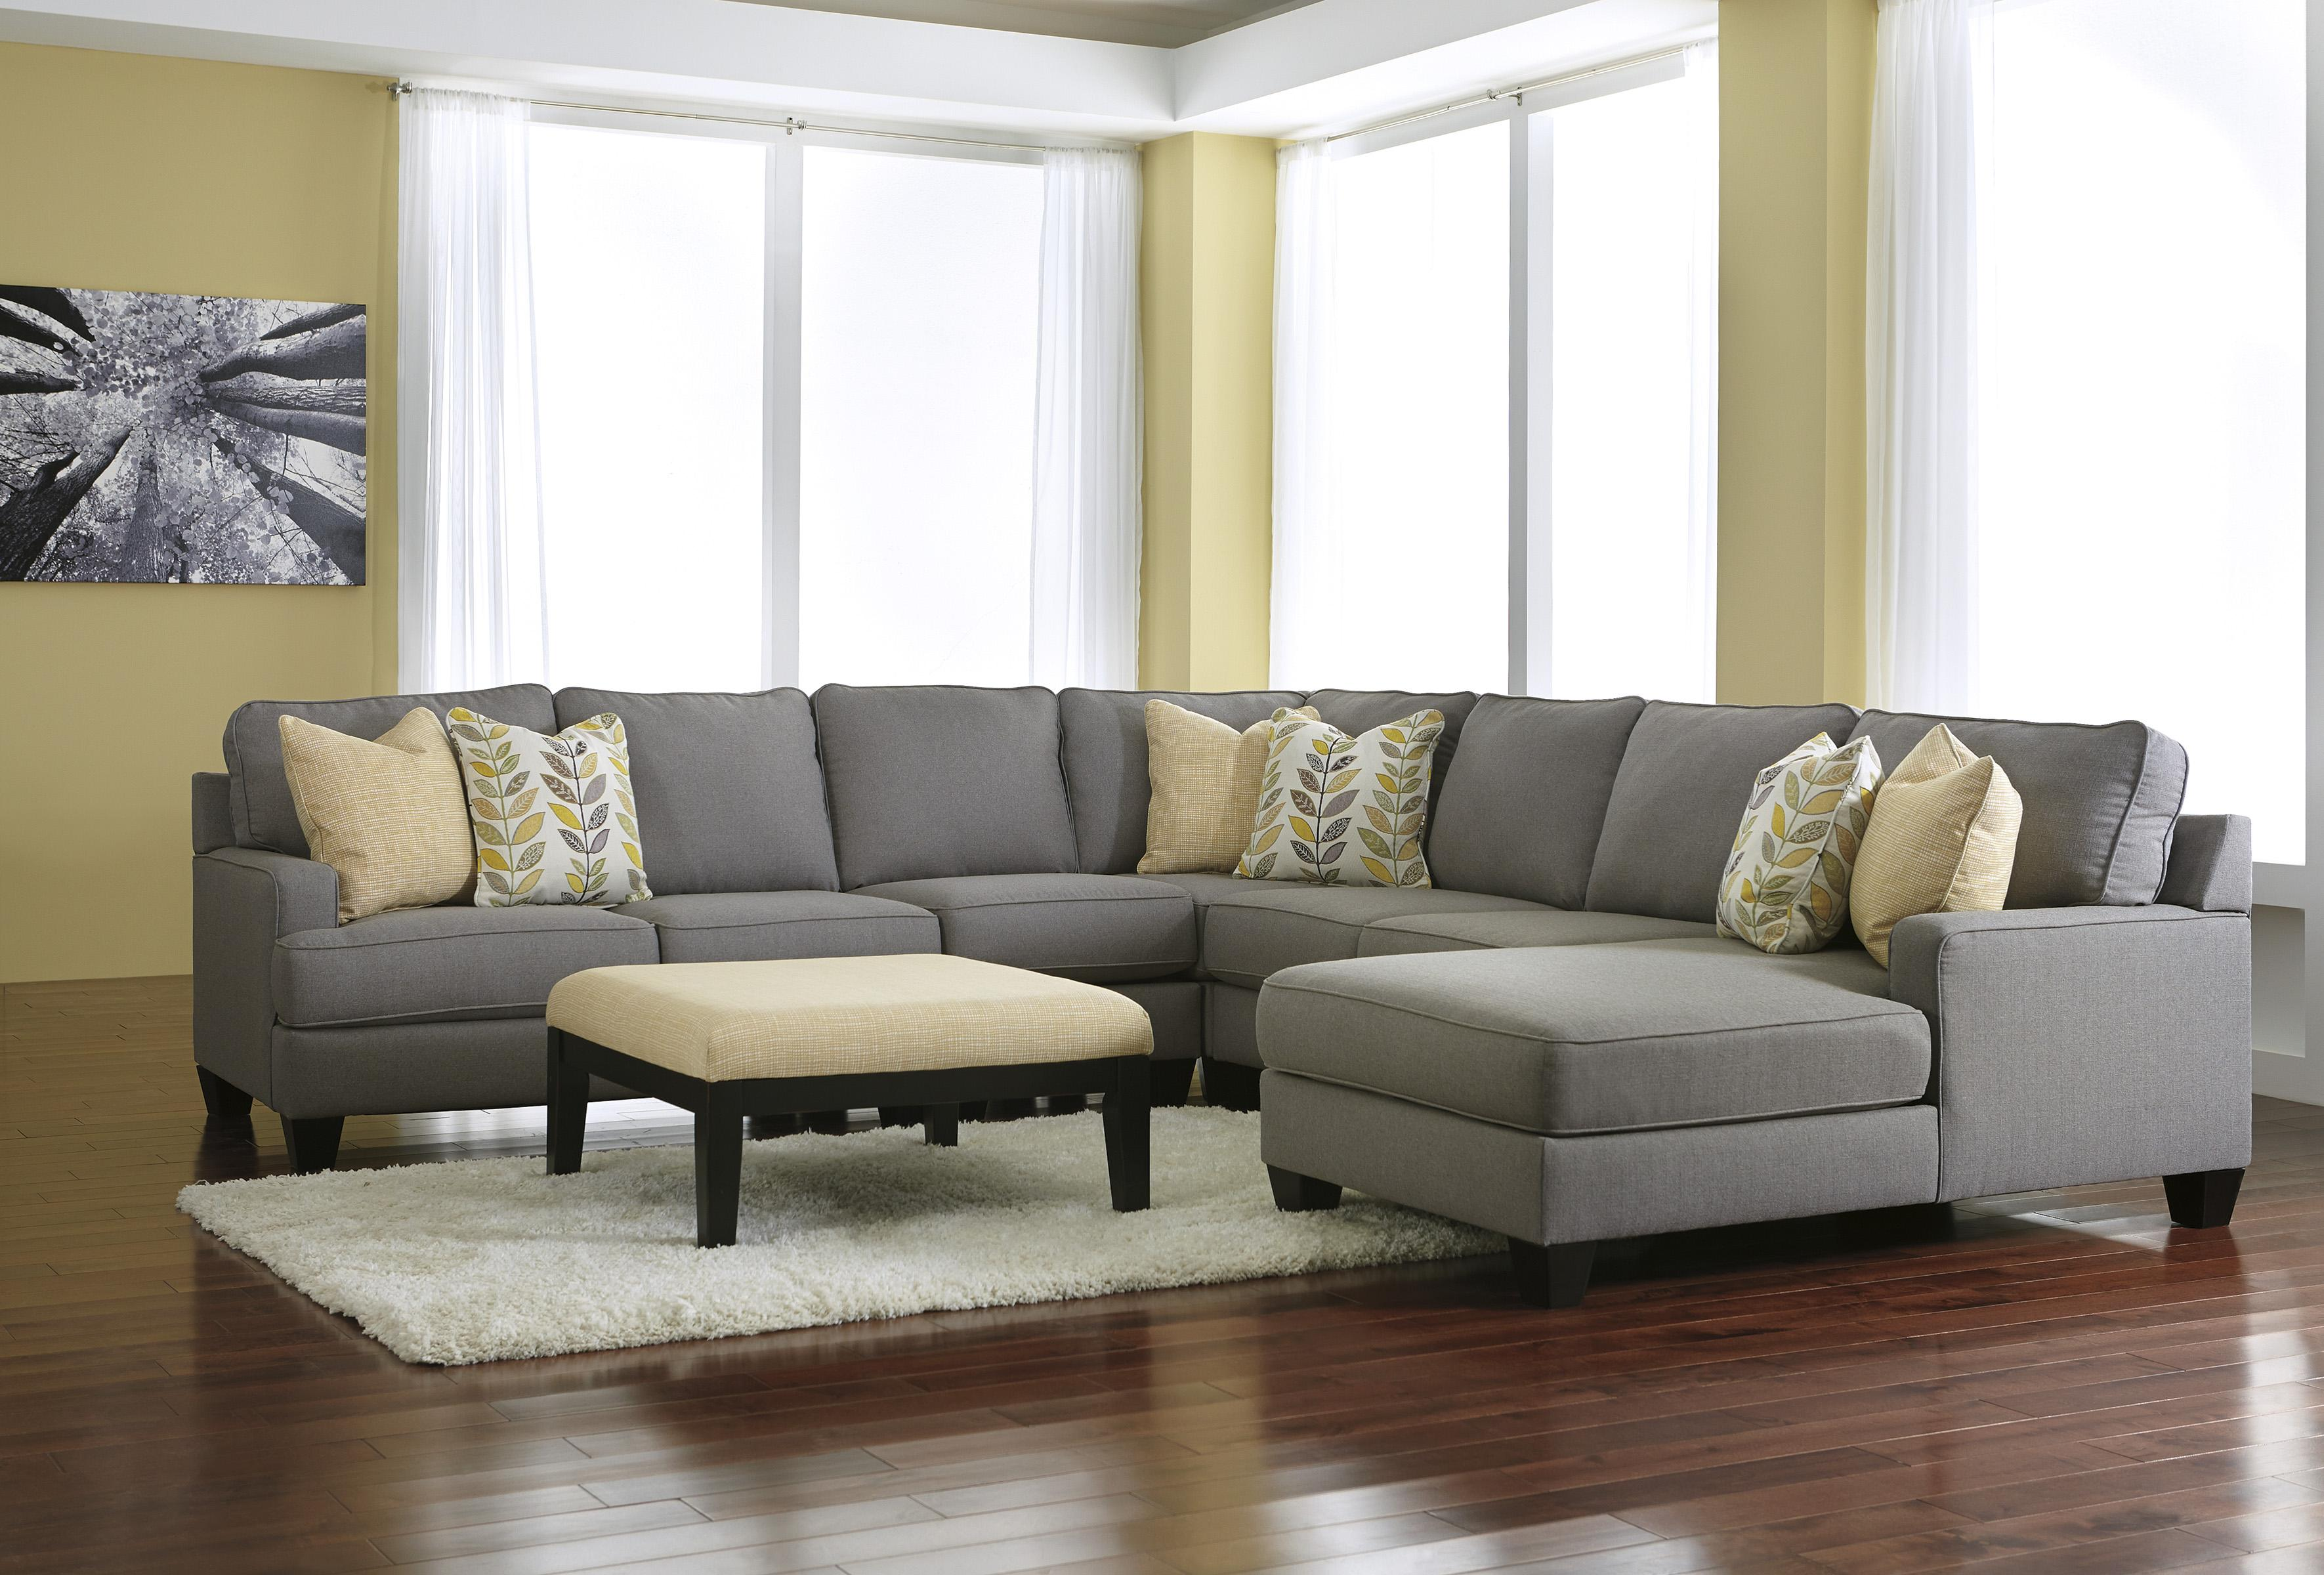 Burgis Design Chamberly Alloy Modern 4 Piece Sectional Sofa with